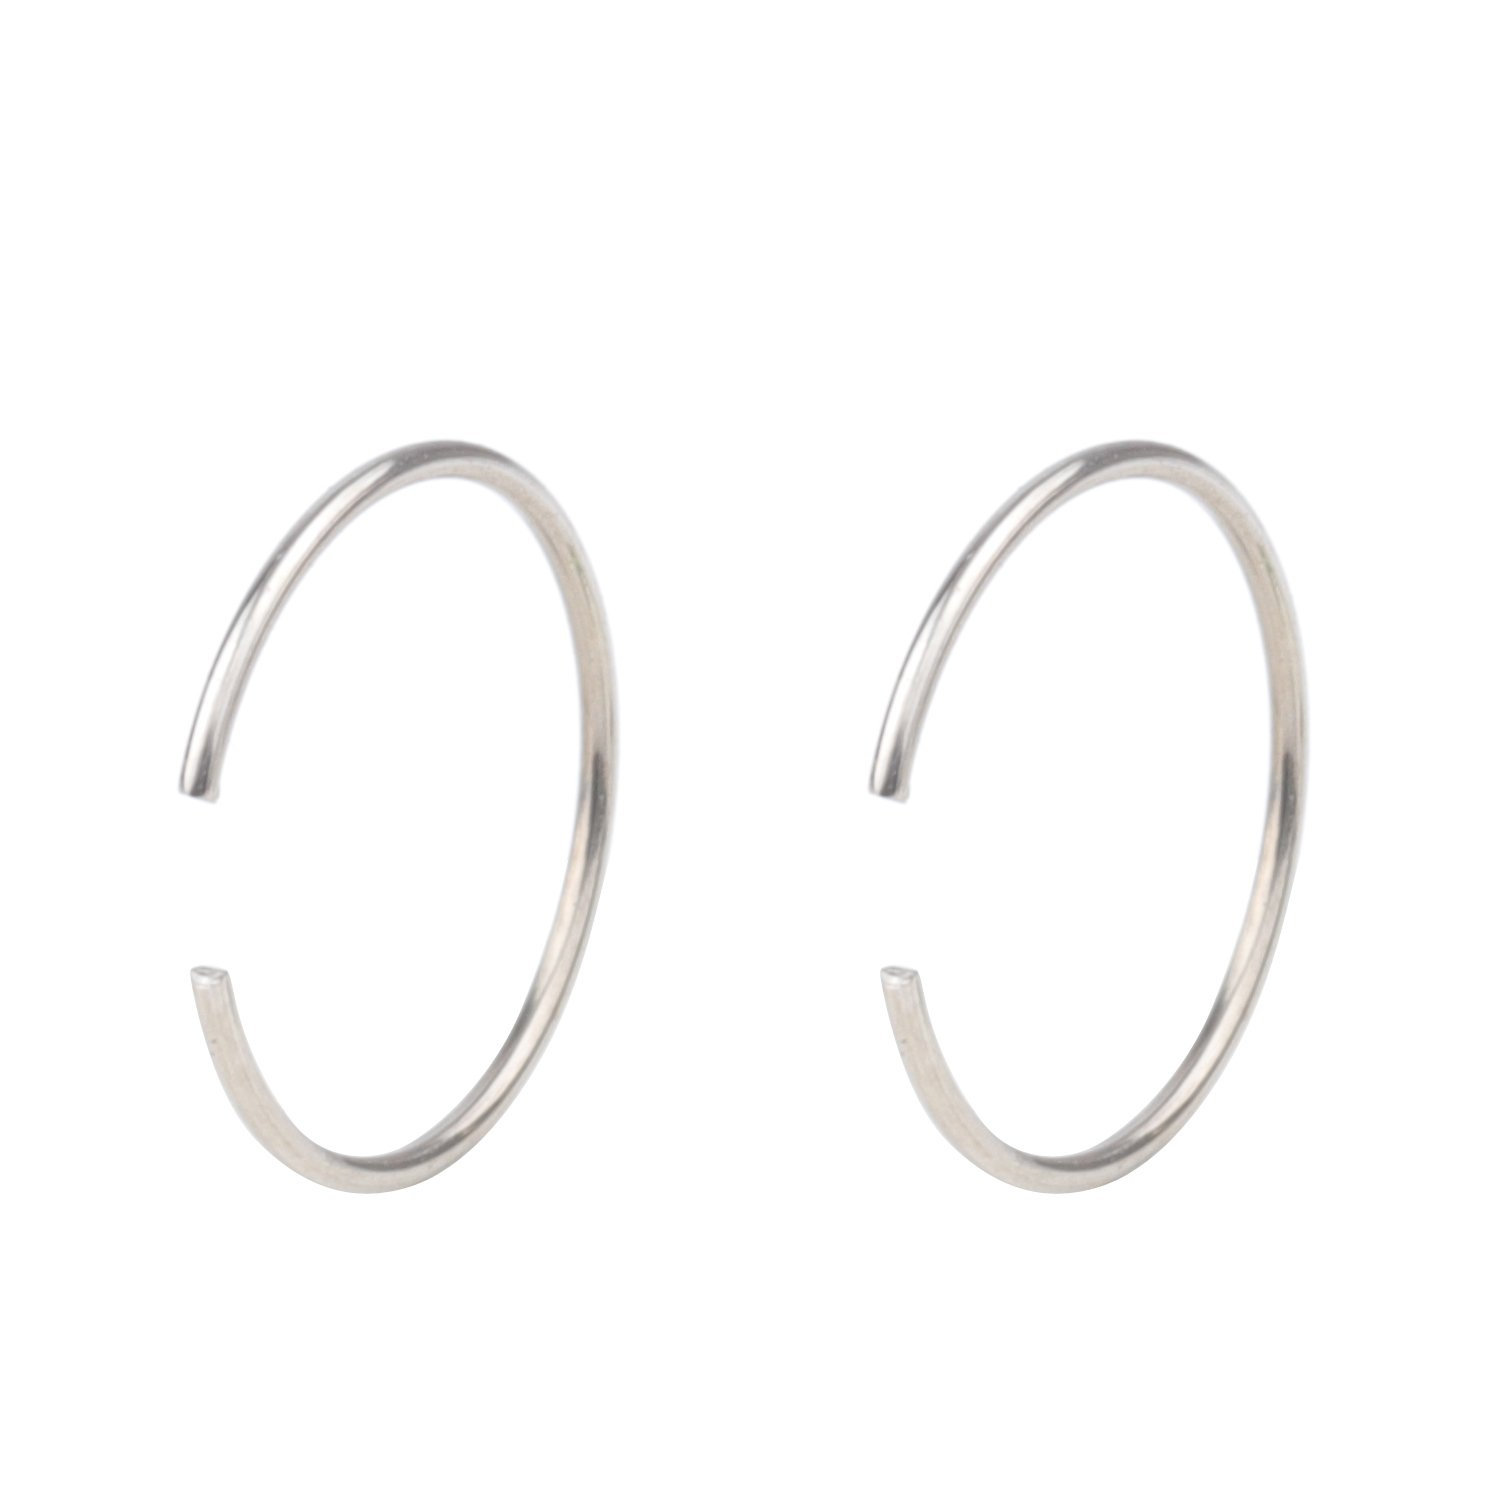 TLB 20G Tiny Nose Ring Hoop Nose Piercing Clip on Ear Hoop Ring Fake Nose Ring Nose Lip 6mm